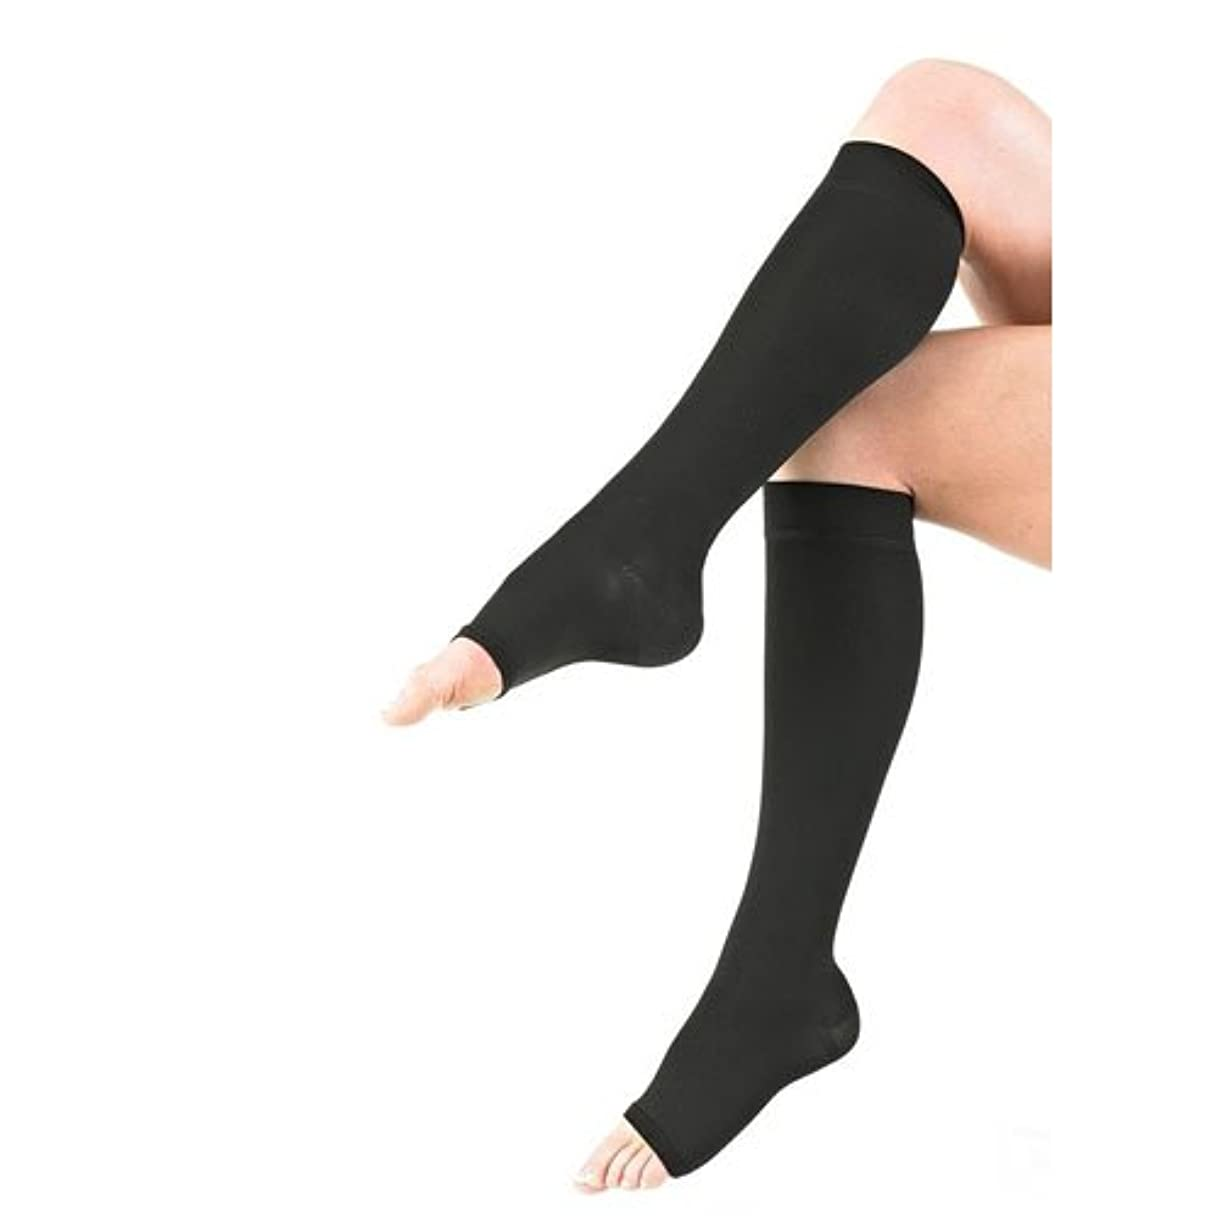 話すメッセンジャー五月Neo G Medical Grade Compression Hosiery Open Toe Knee High Stockings class 2, 20-30mmHg - Medium-Black by Neo-G